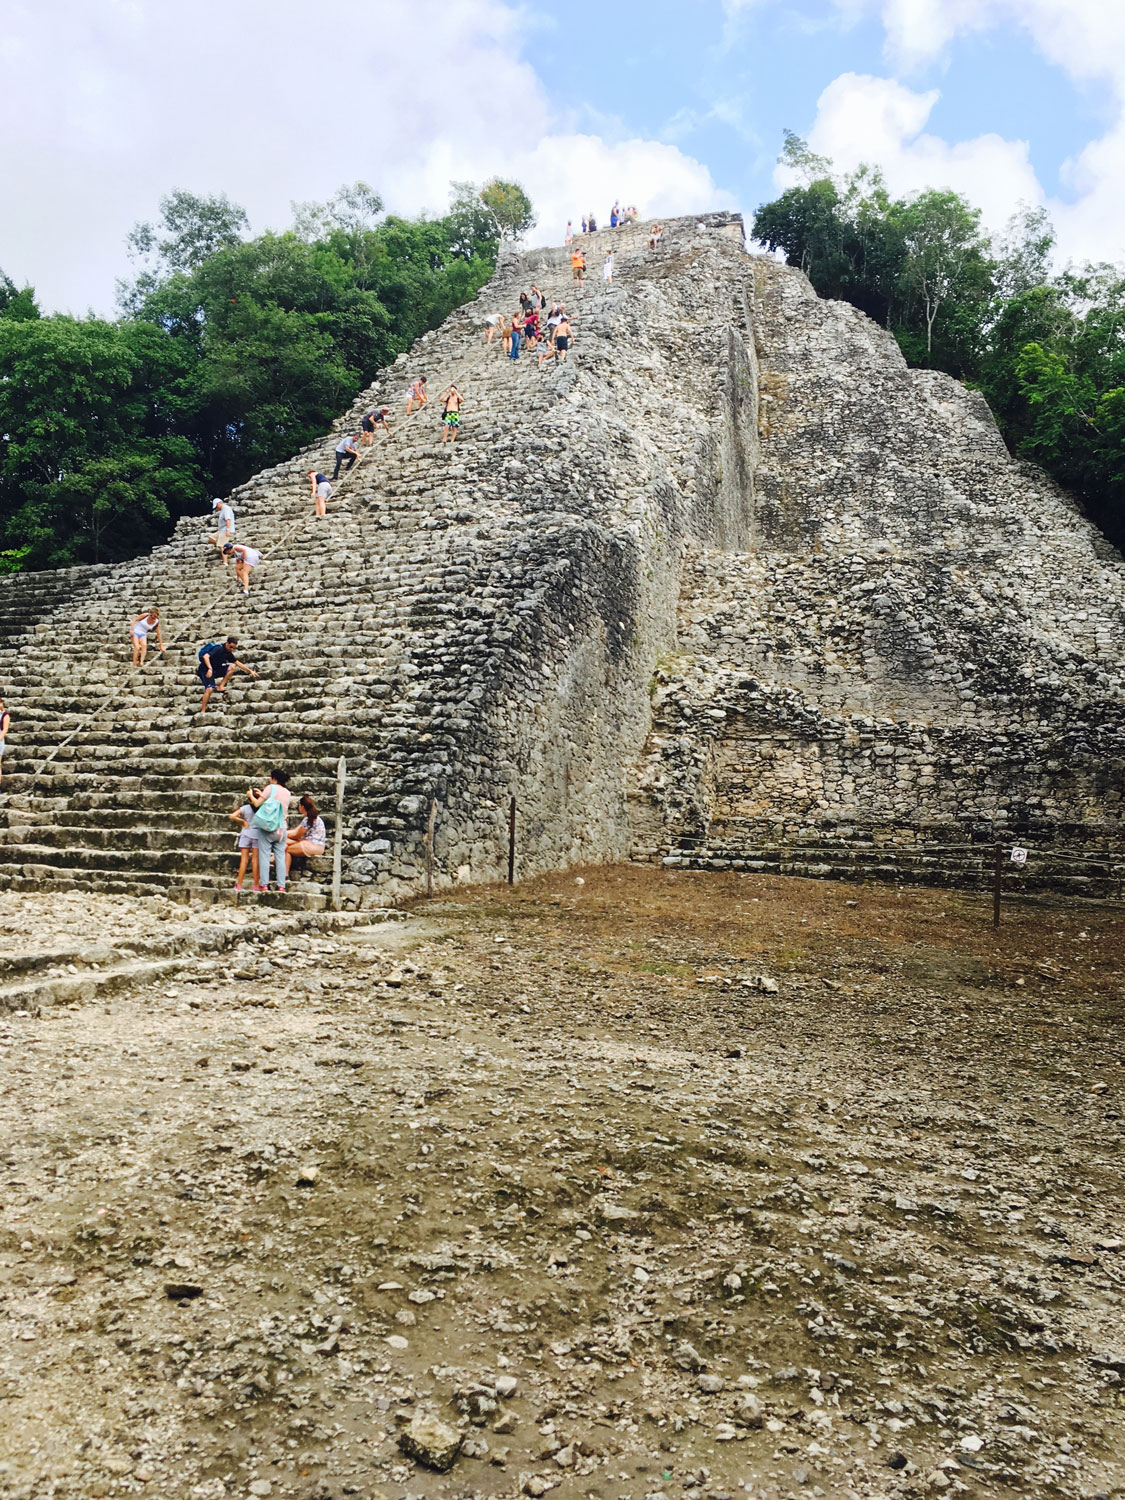 On top of the pyramid (and the 'world') with my sister, 2015.